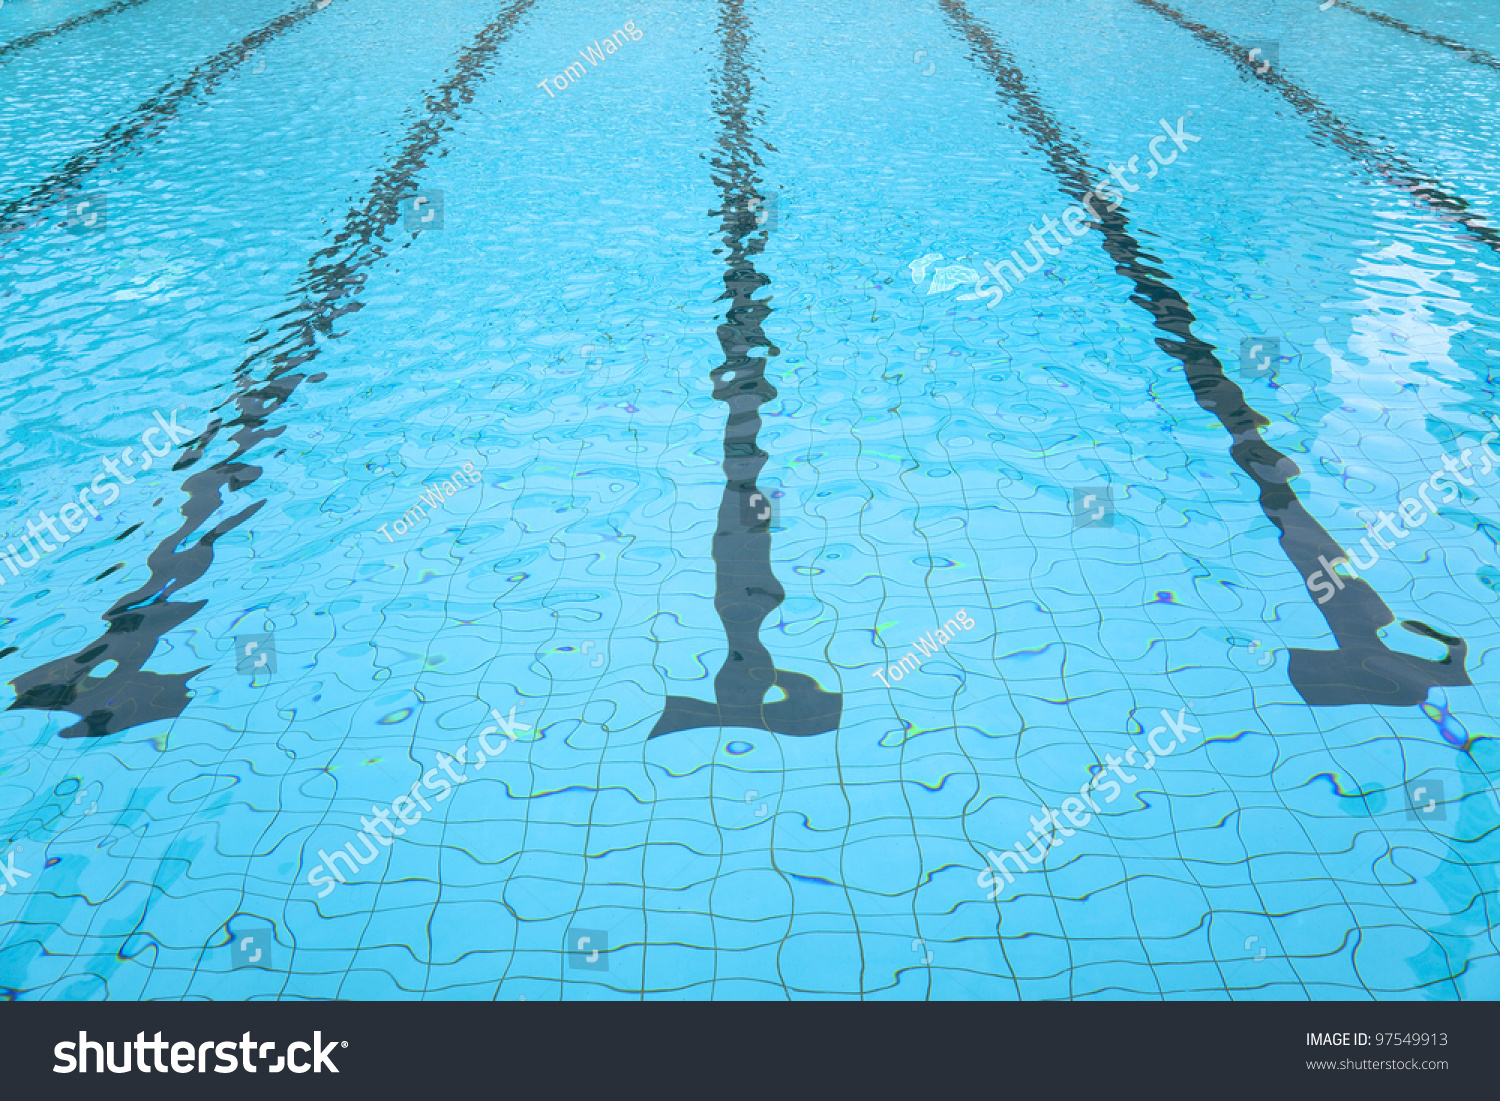 Short essay about swimming